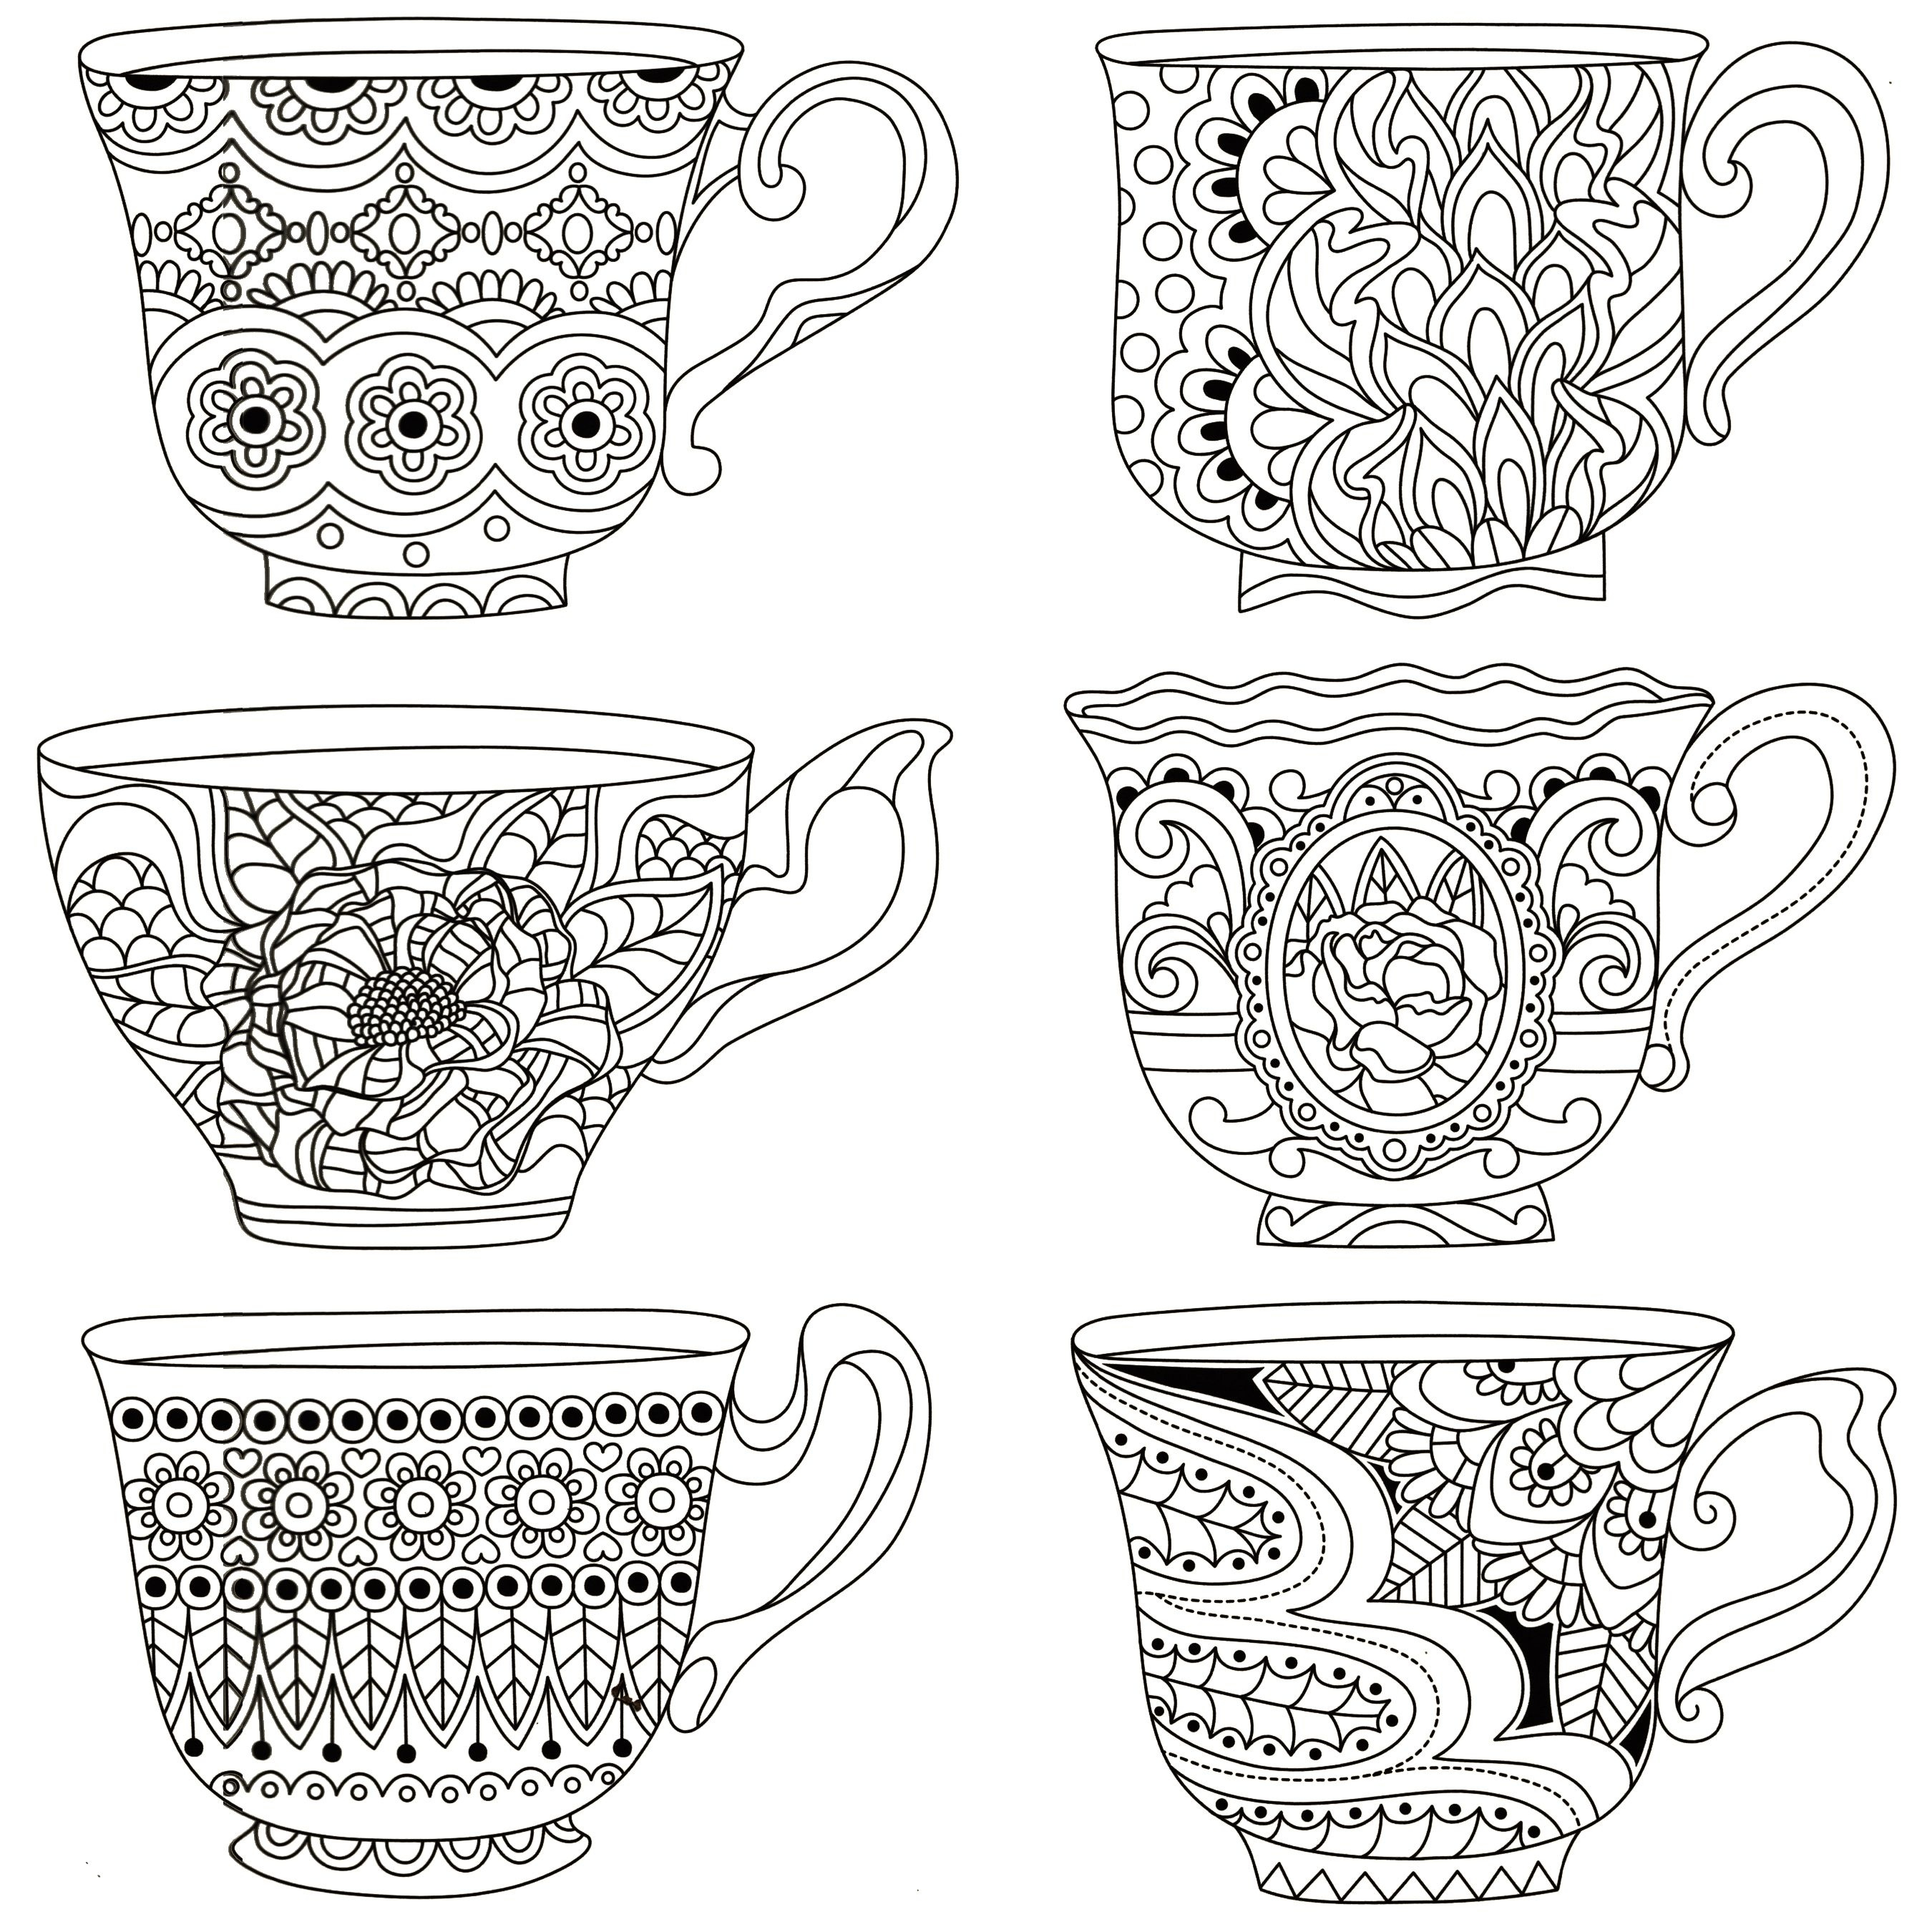 Pindeb Sherman On Coloring | Dover Coloring Pages, Free Adult - Free Printable Tea Cup Coloring Pages